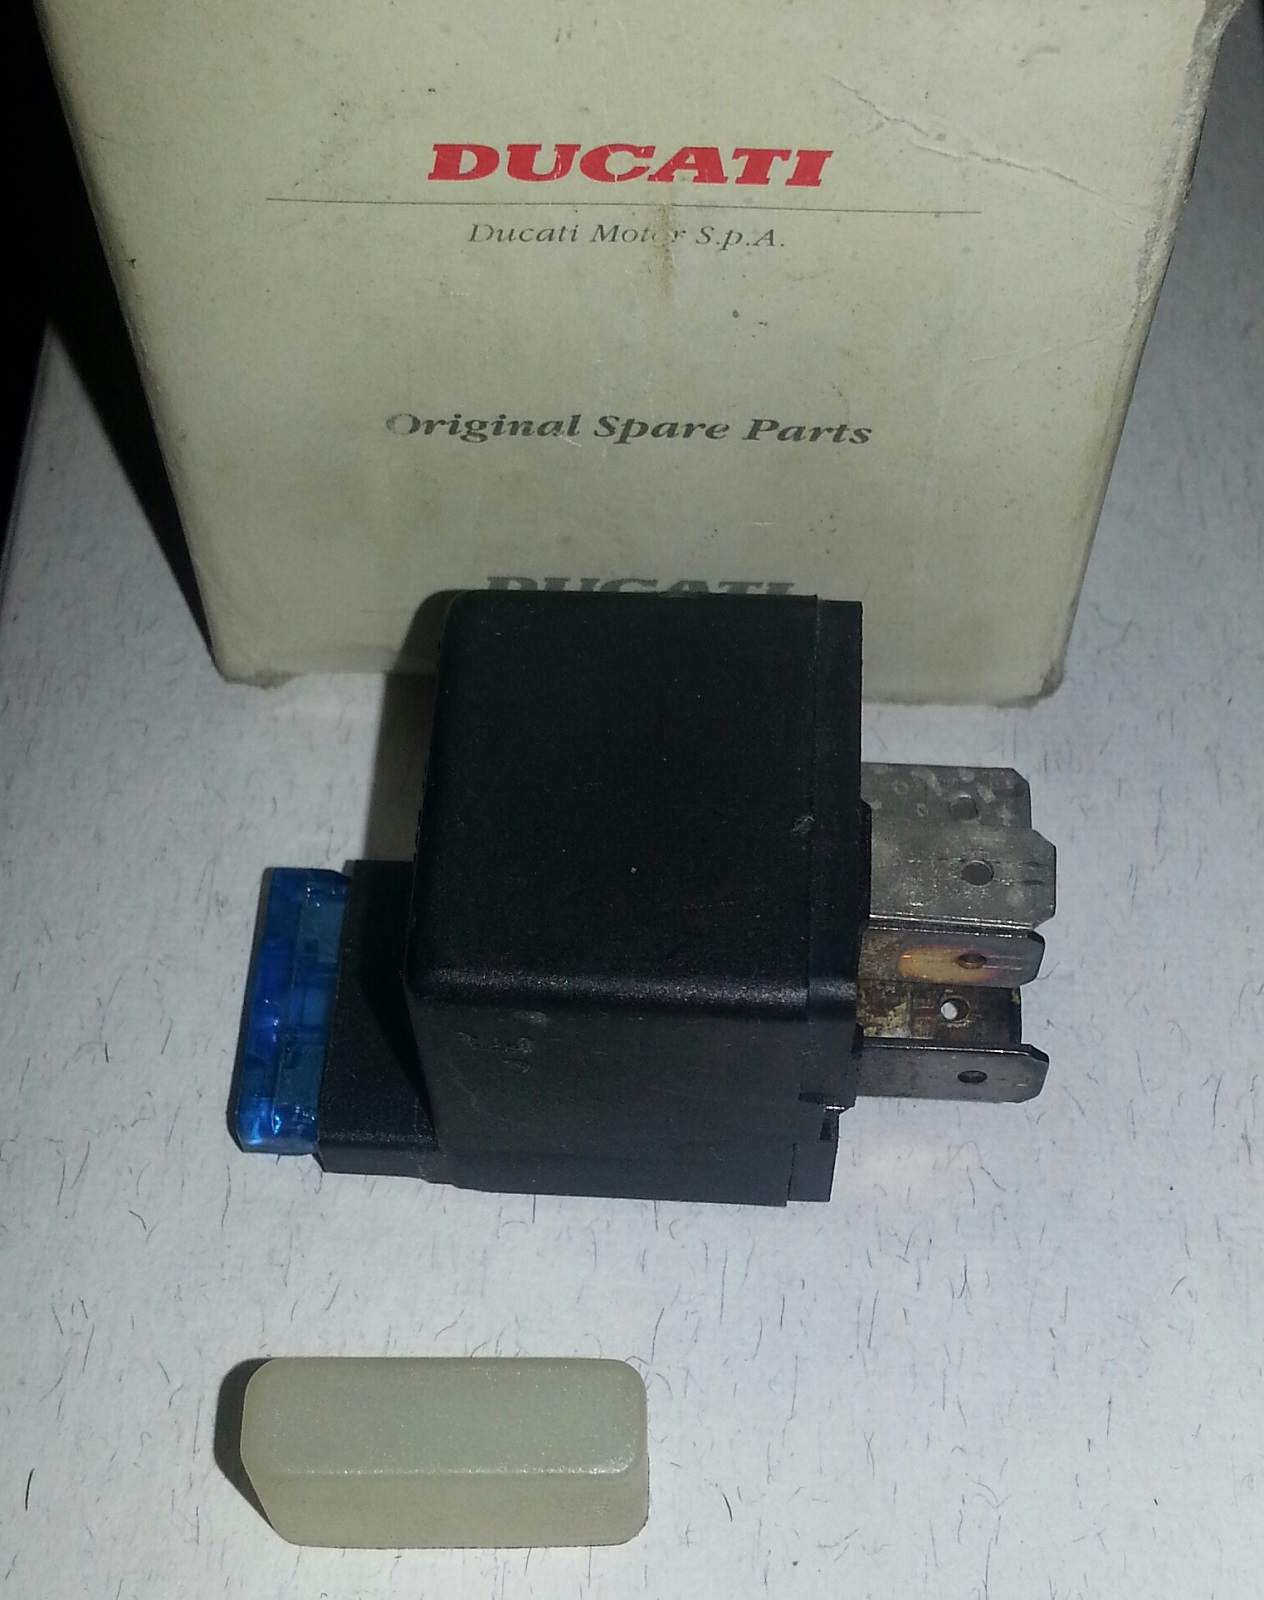 OEM Ducati 916 888 851 907IE Ignion relay with fuse Also 000067464